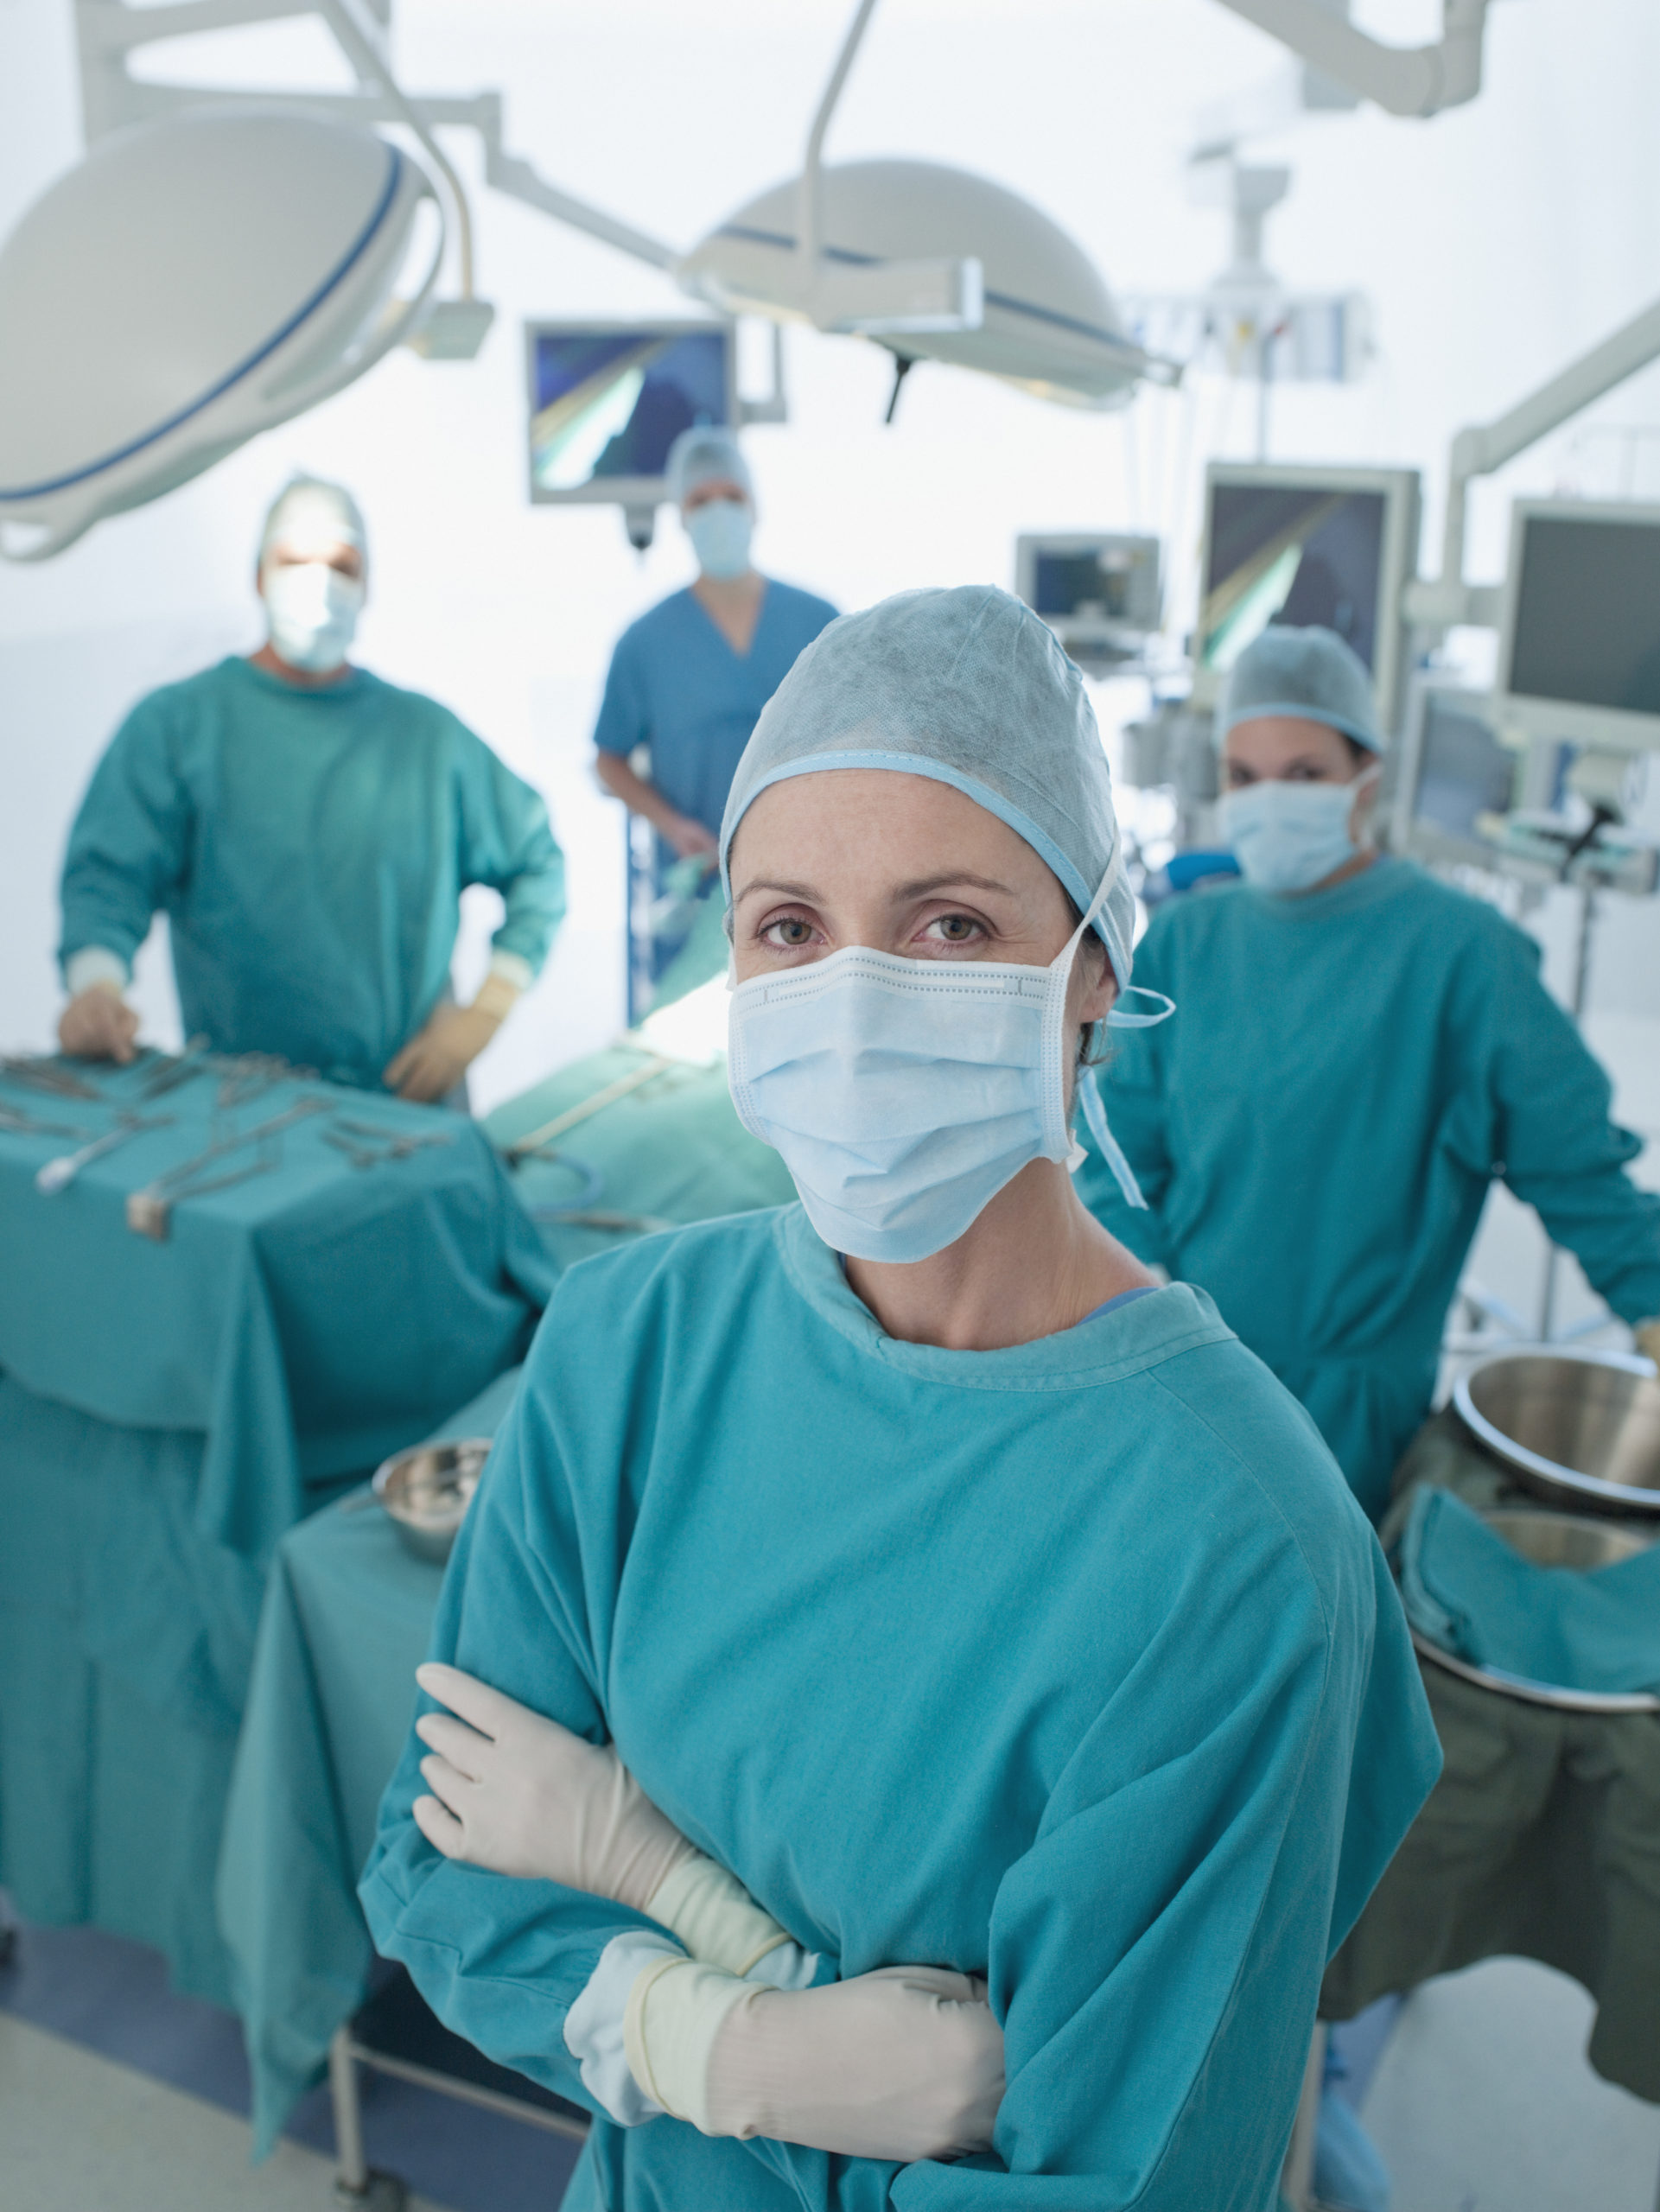 An Alternative Model of Surgical Staffing